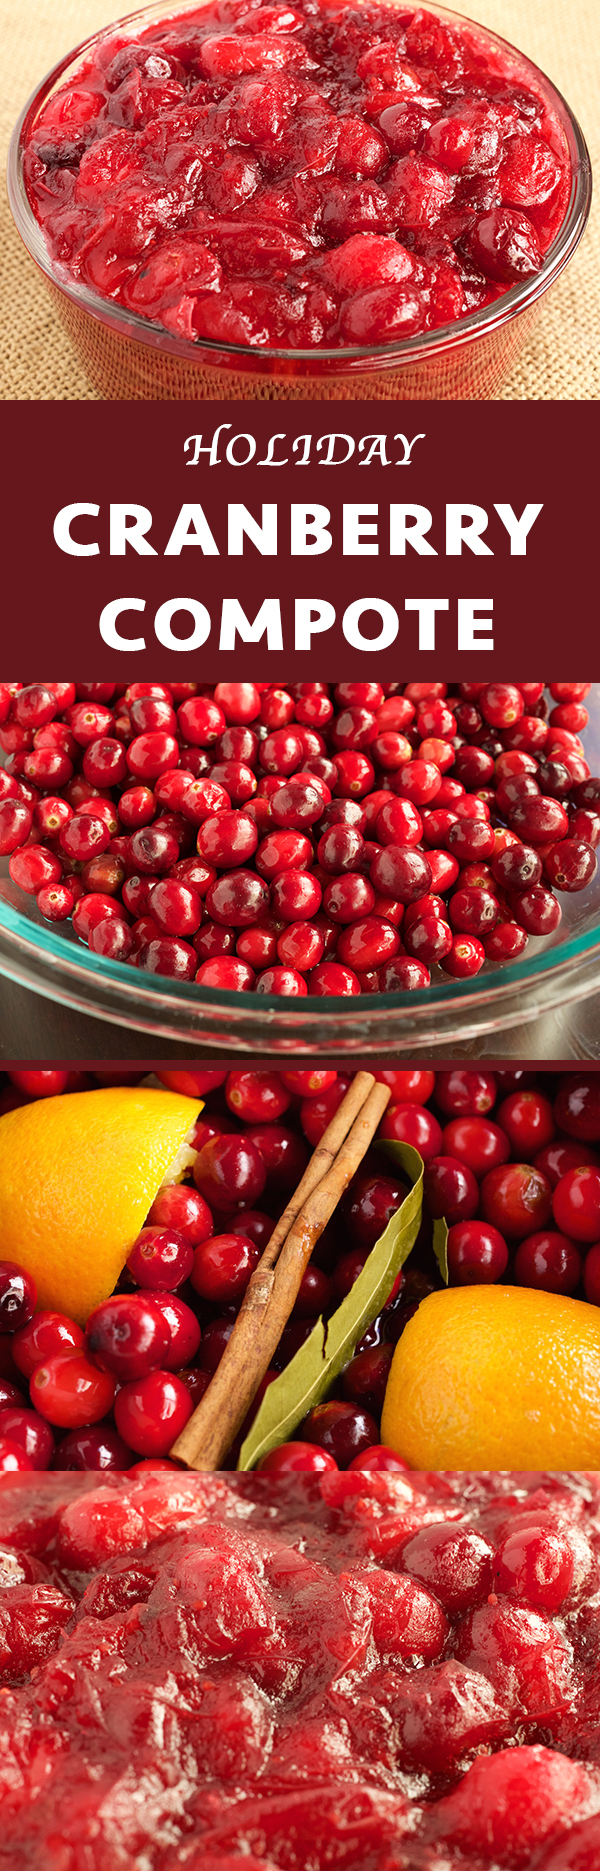 Holiday Cranberry Compote